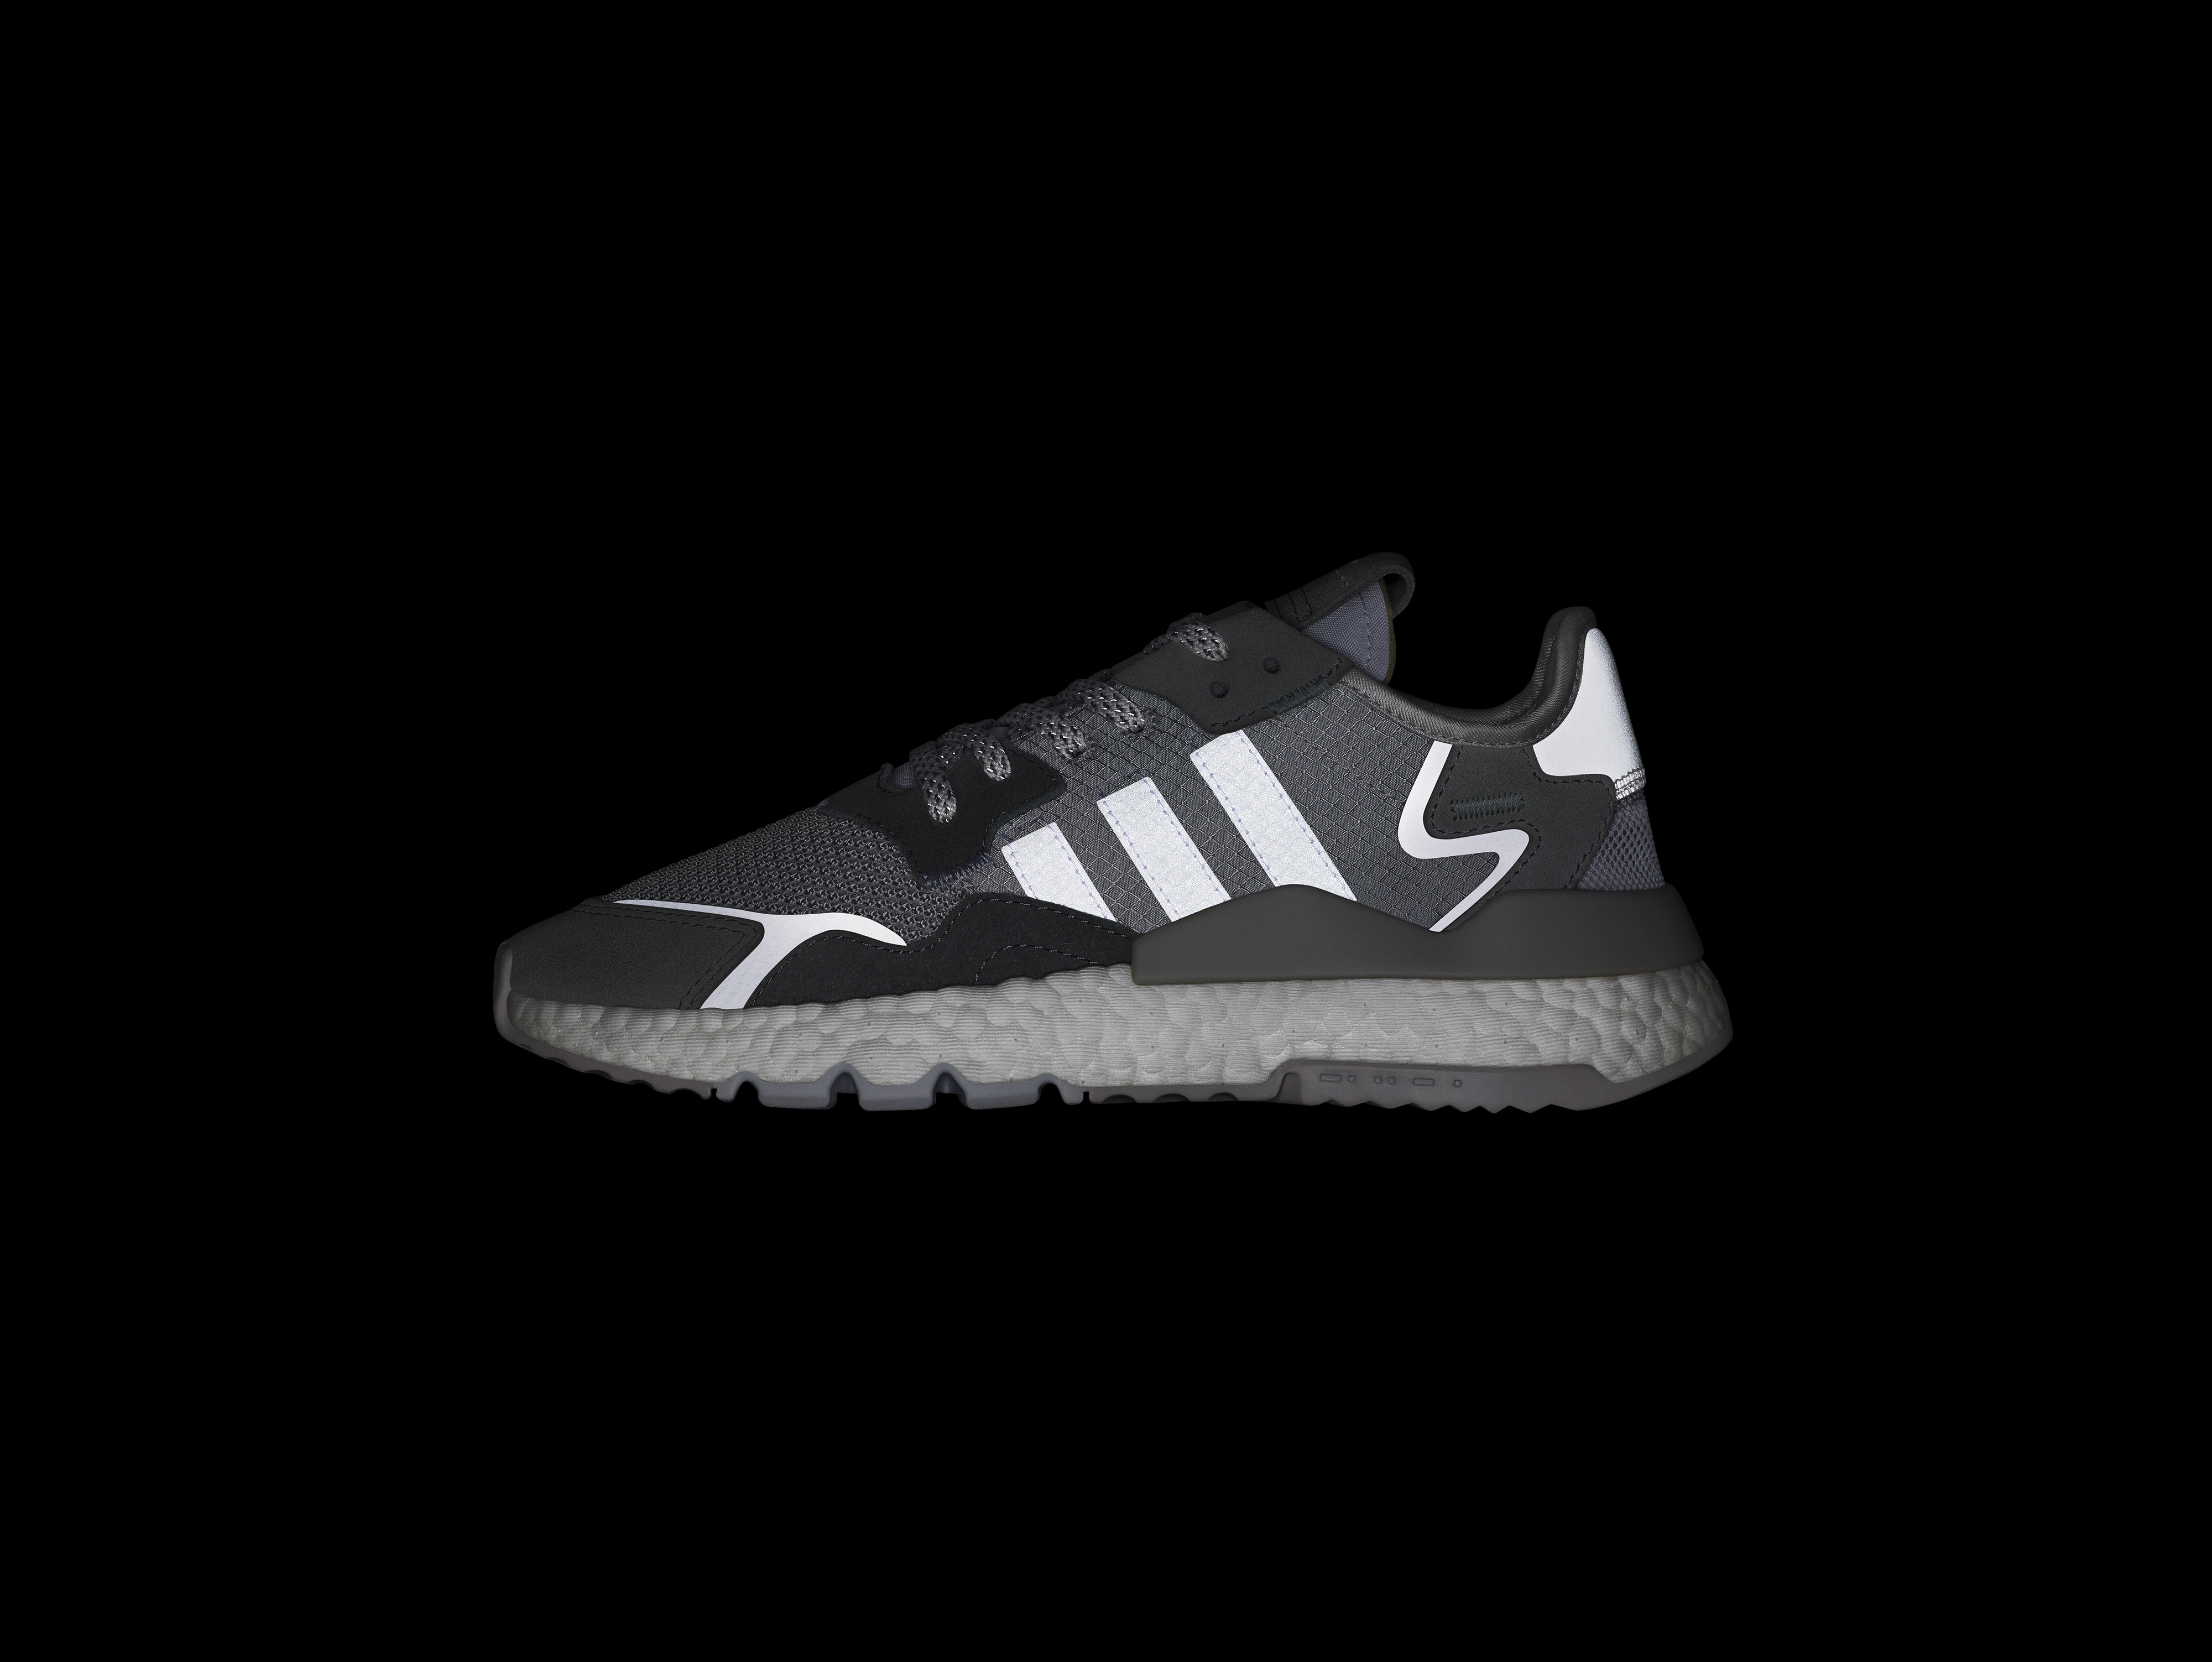 the latest 108d8 2dc4e April 10, 2019. Beirut, Lebanon- April 9, 2019. adidas Originals offers up  new iterations of the Nite Jogger ...